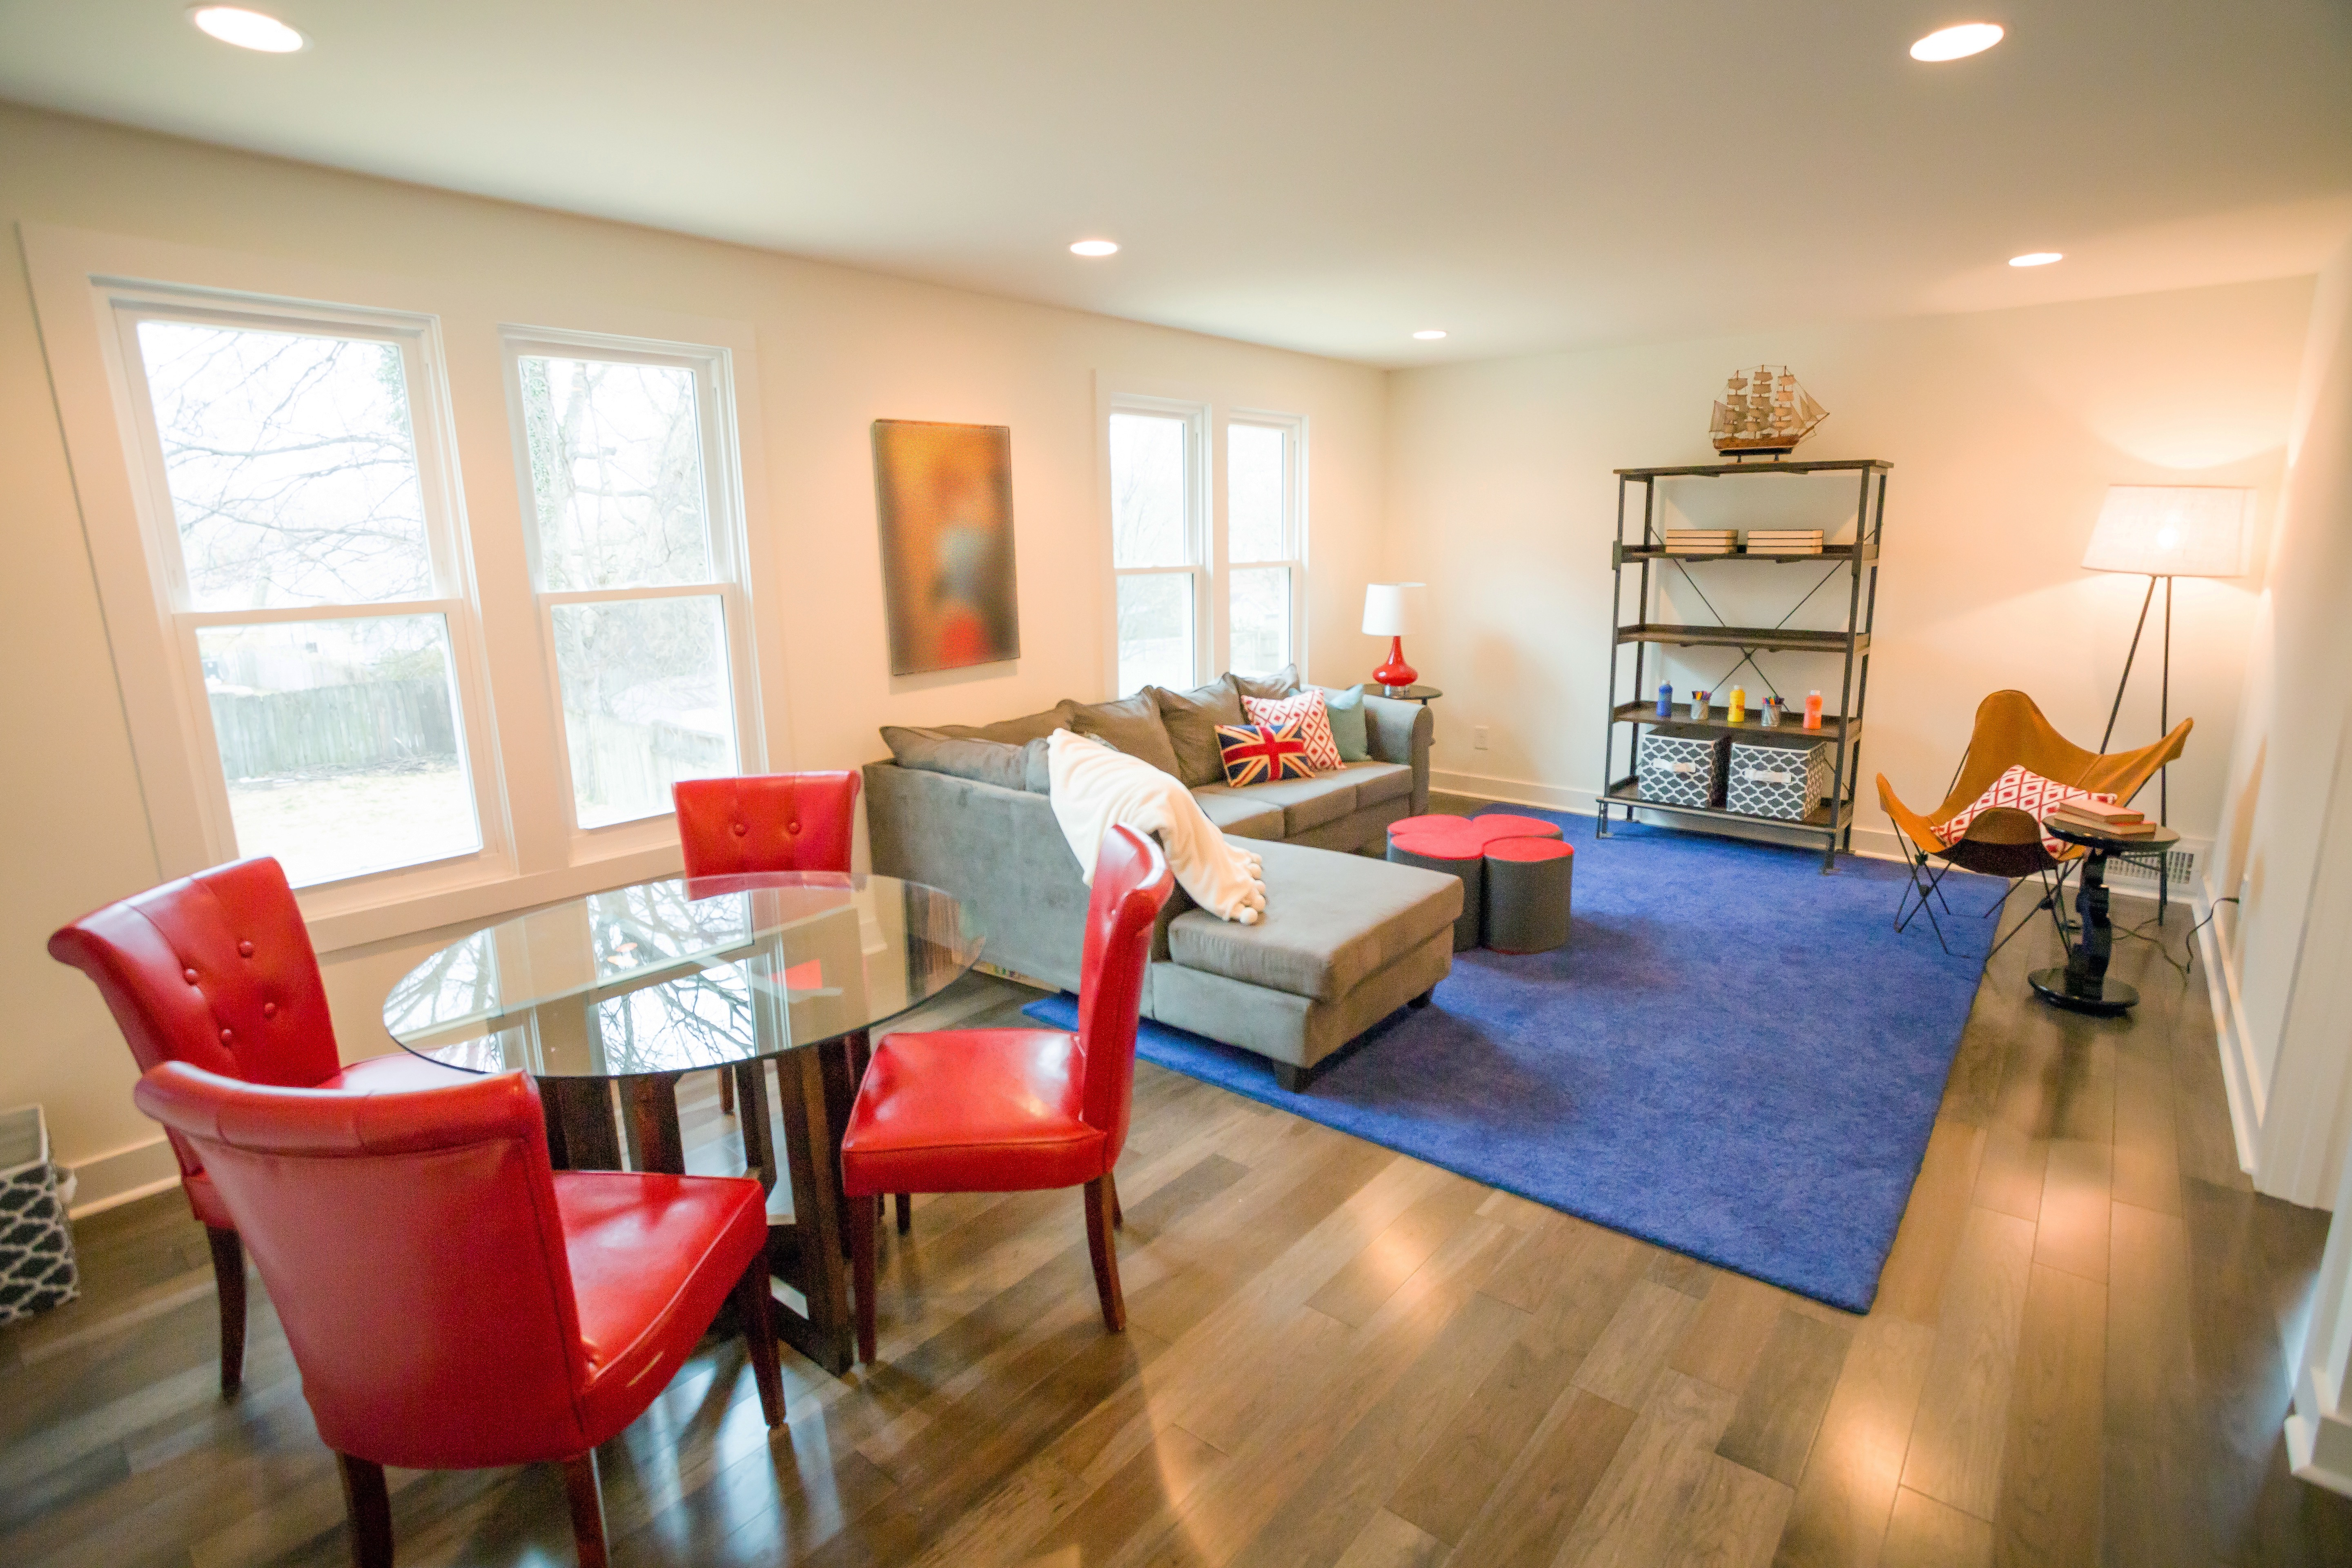 Living Space With Small Dining Area Decor (Image 20 of 32)